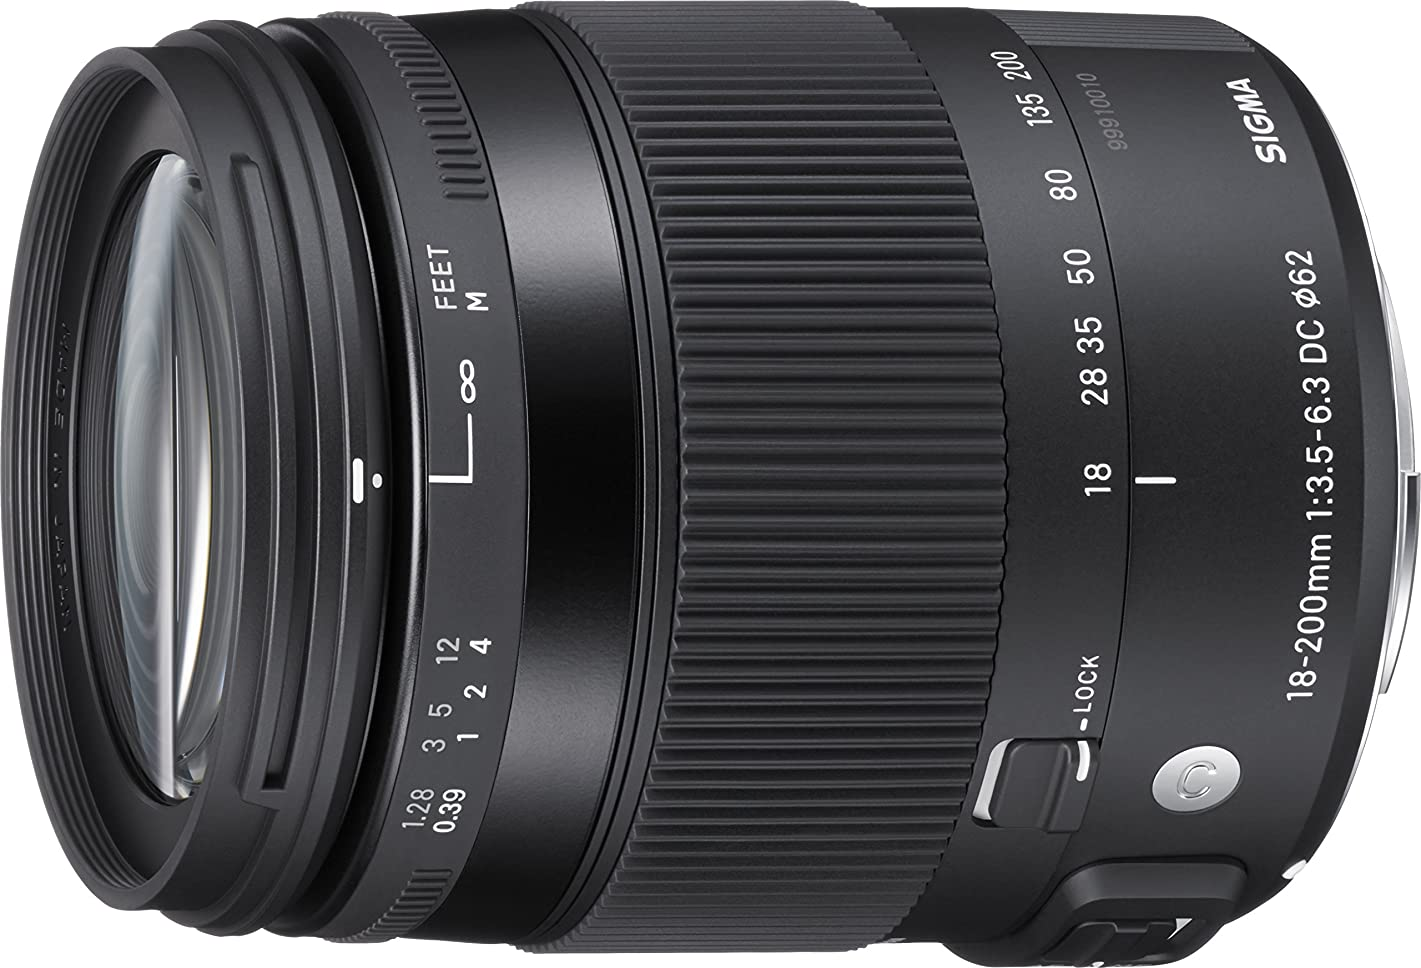 Sigma 18-200mm F3.5-6.3 Contemporary DC Macro OS HSM Lens for Sony A-Mount